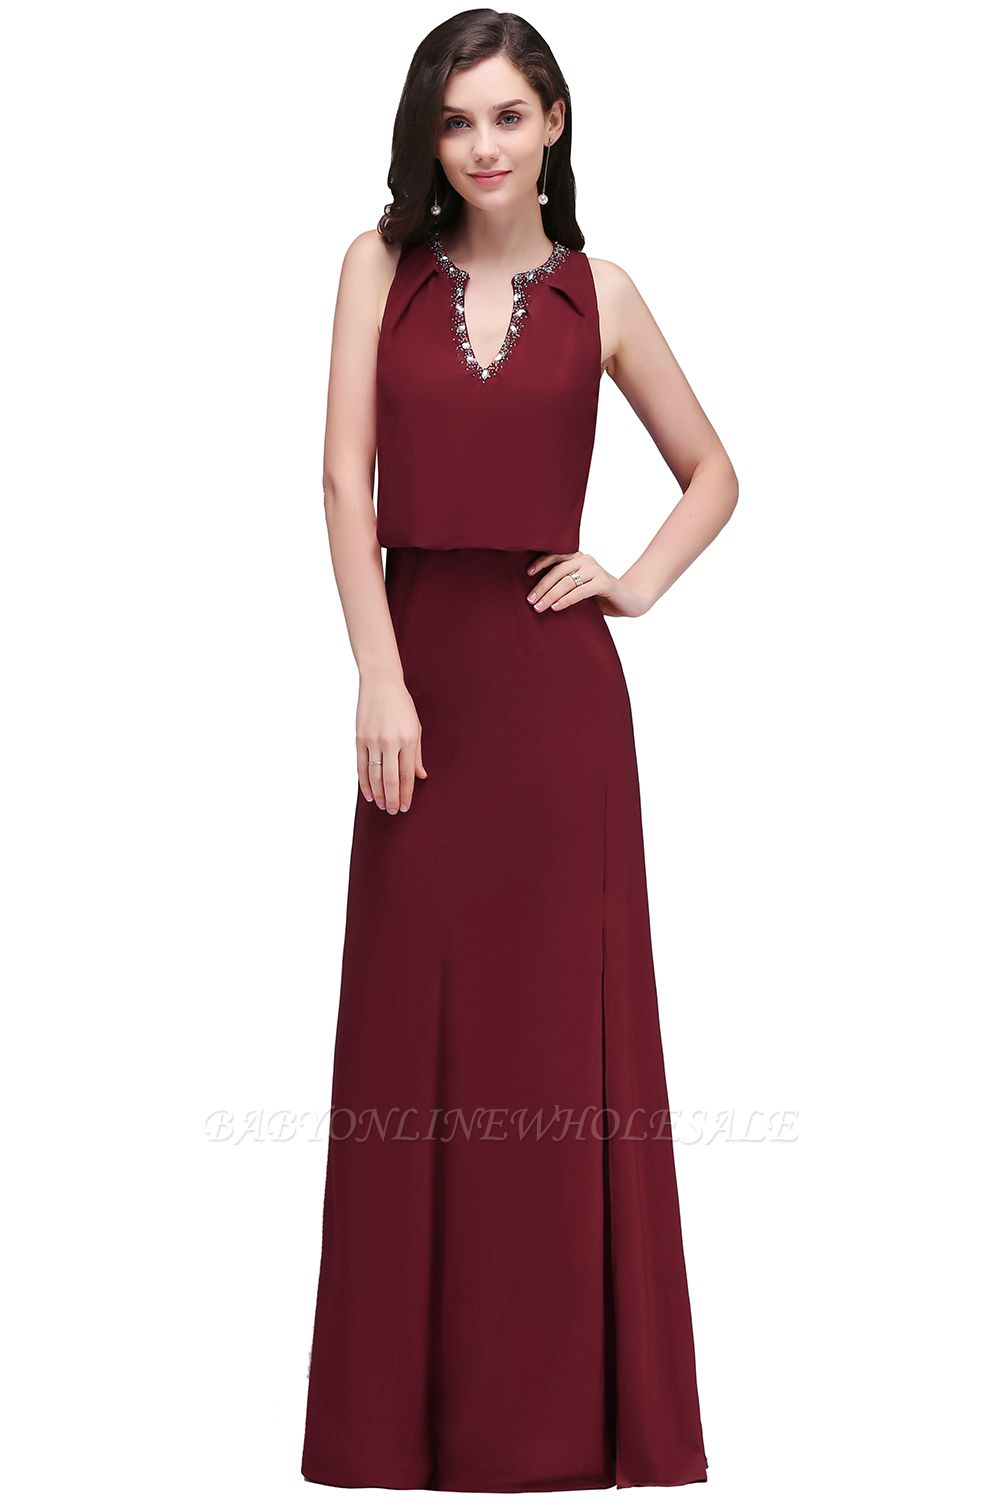 EDITH | A-line V-neck Floor-length Sleeveless Burgundy Prom Dresses with Crystal